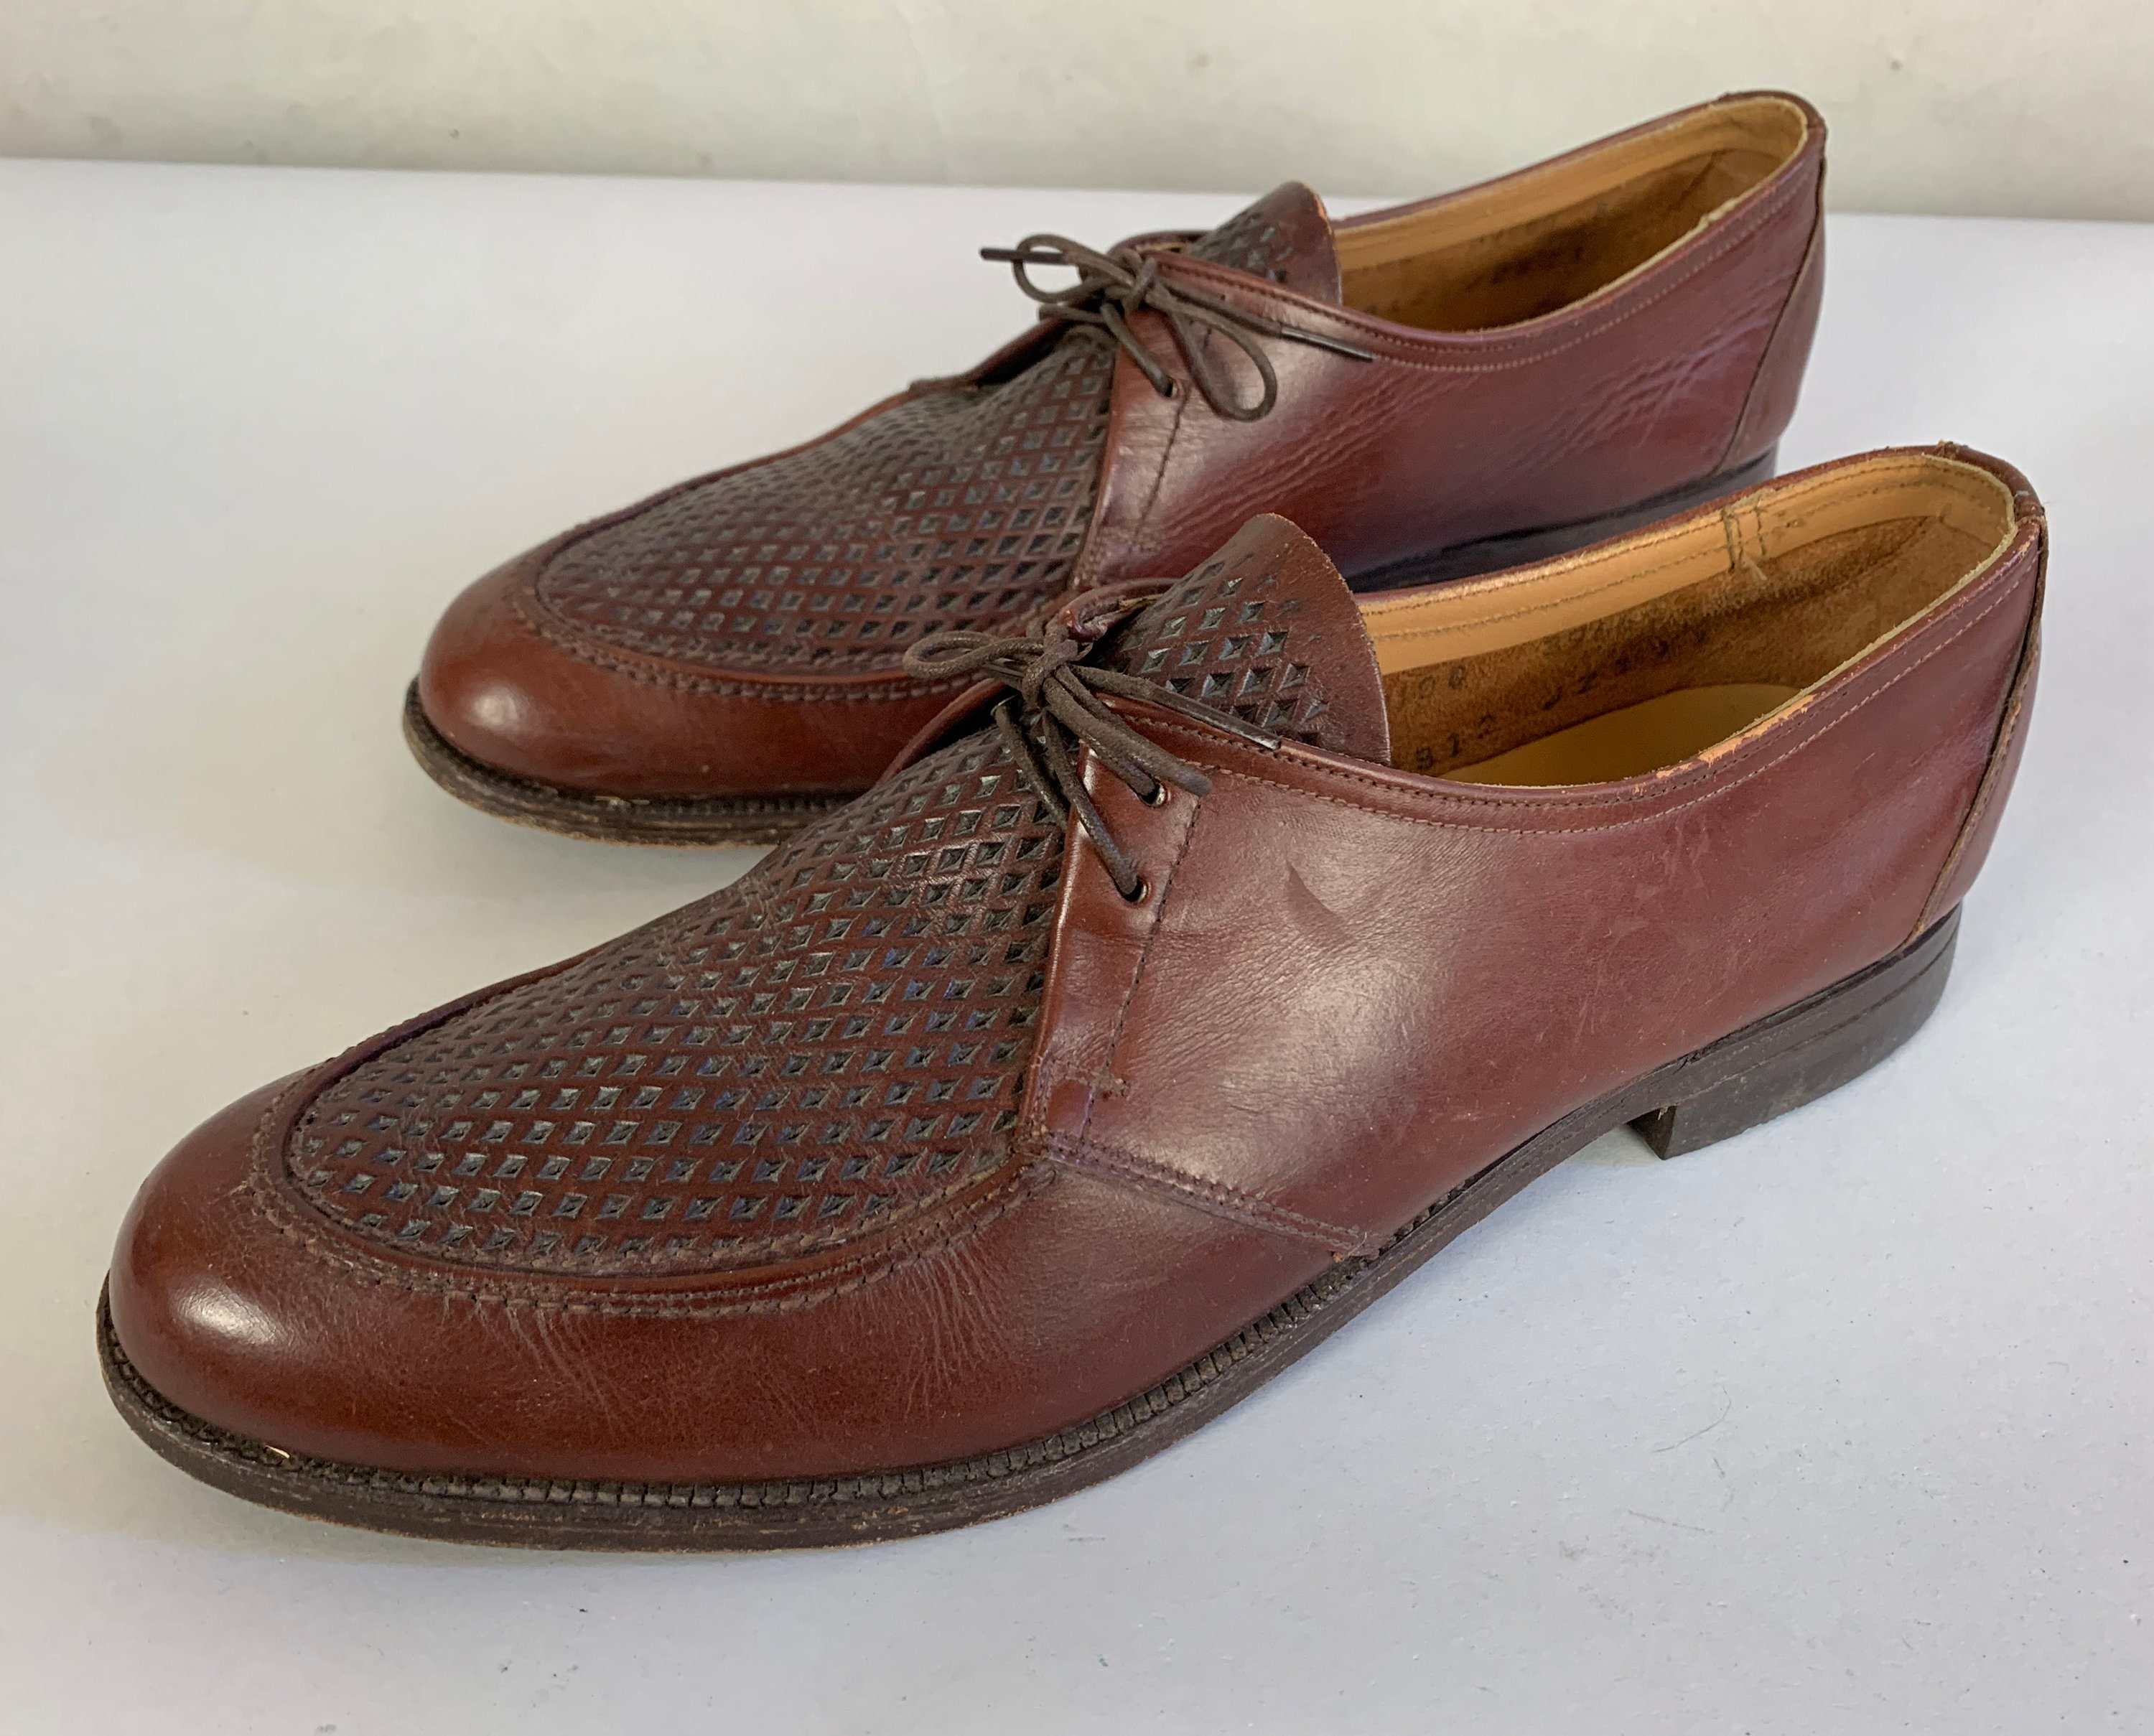 68b715f6b70fc 1940s Perry's Picnic Shoes | Vintage 40s All Leather Toffee Brown Apron Toe  Summer Look Oxfords with Faux Ventilation Texture | Size US 8